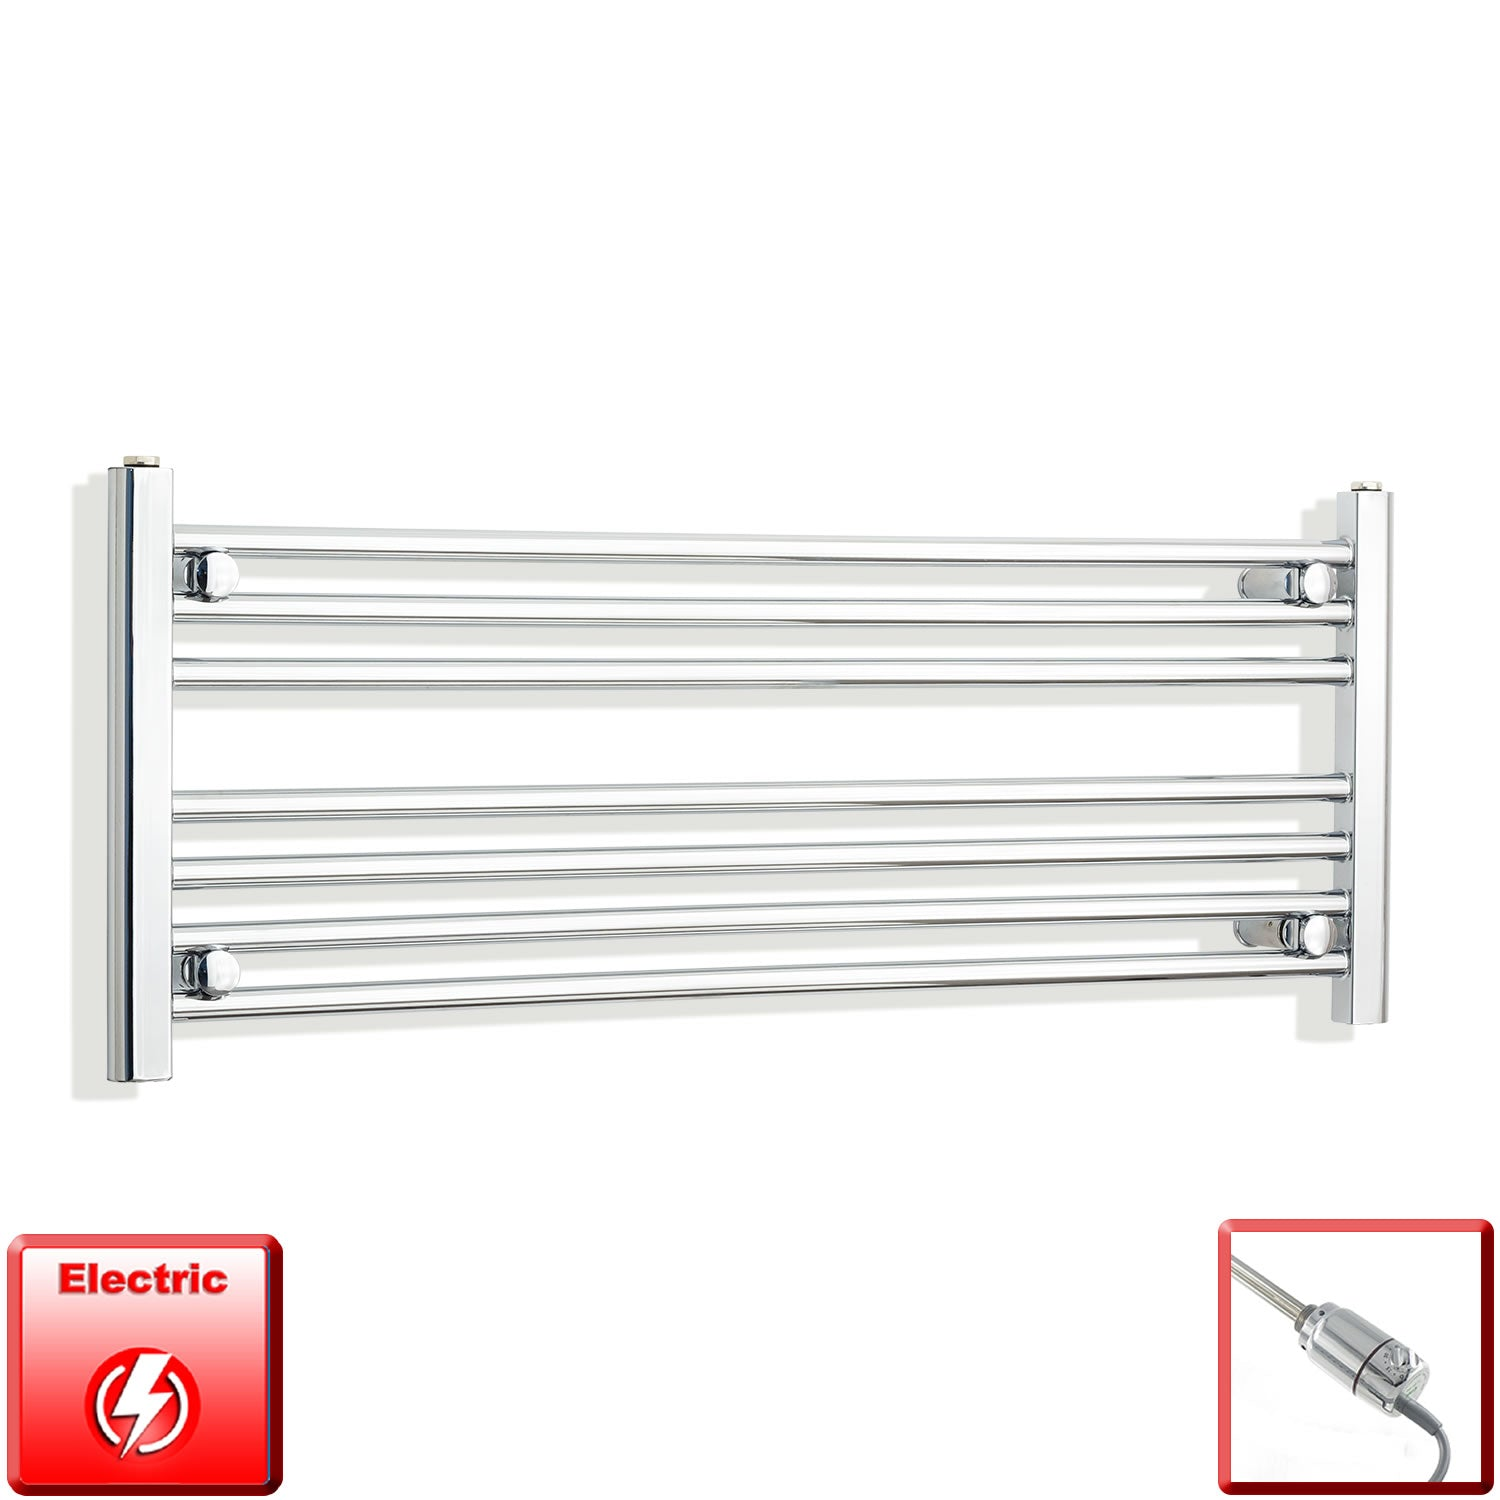 1300mm Wide 400mm High Pre-Filled Chrome Electric Towel Rail Radiator With Thermostatic GT Element